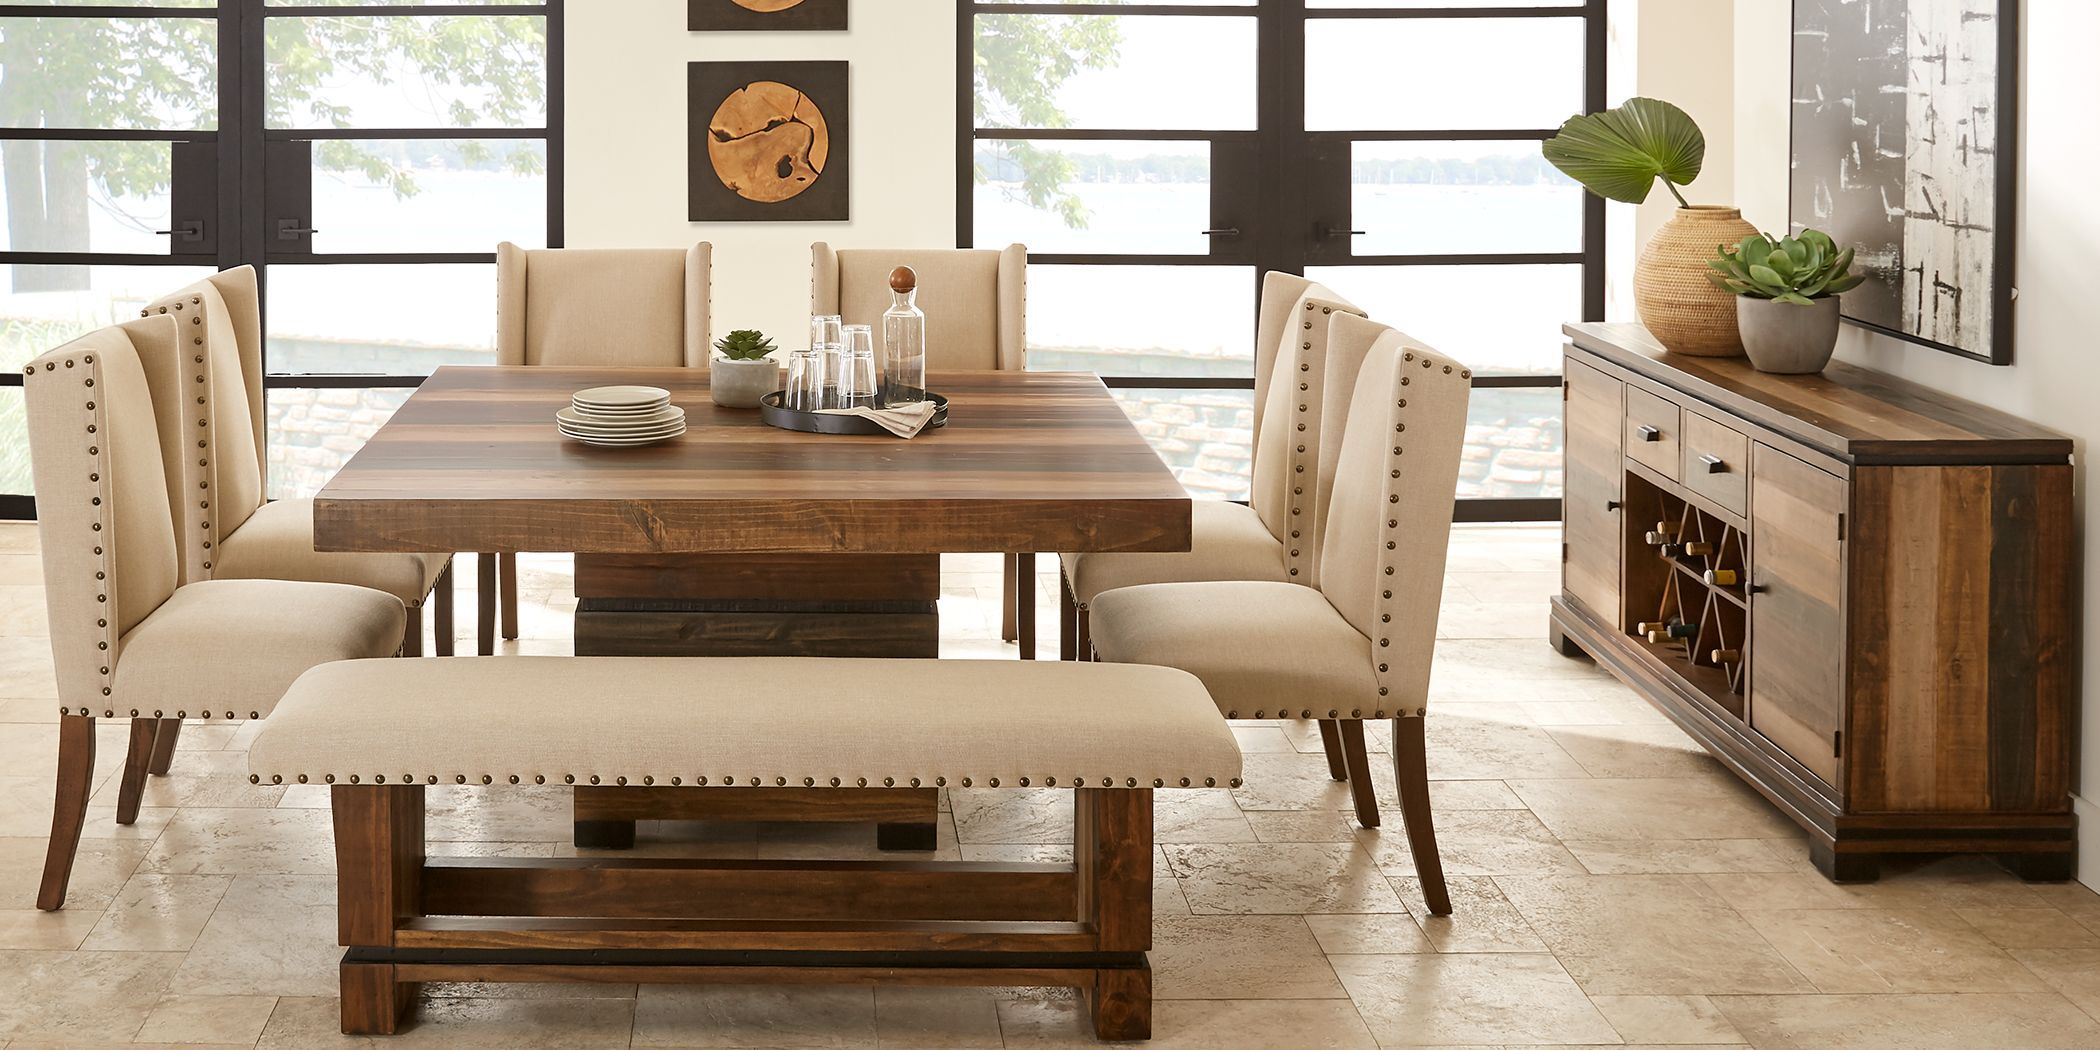 Cindy Crawford Home Westover Hills Brown 5 Pc Square Dining Room In 2020 Brown Dining Room Dining Room Sets Brown Dining Table